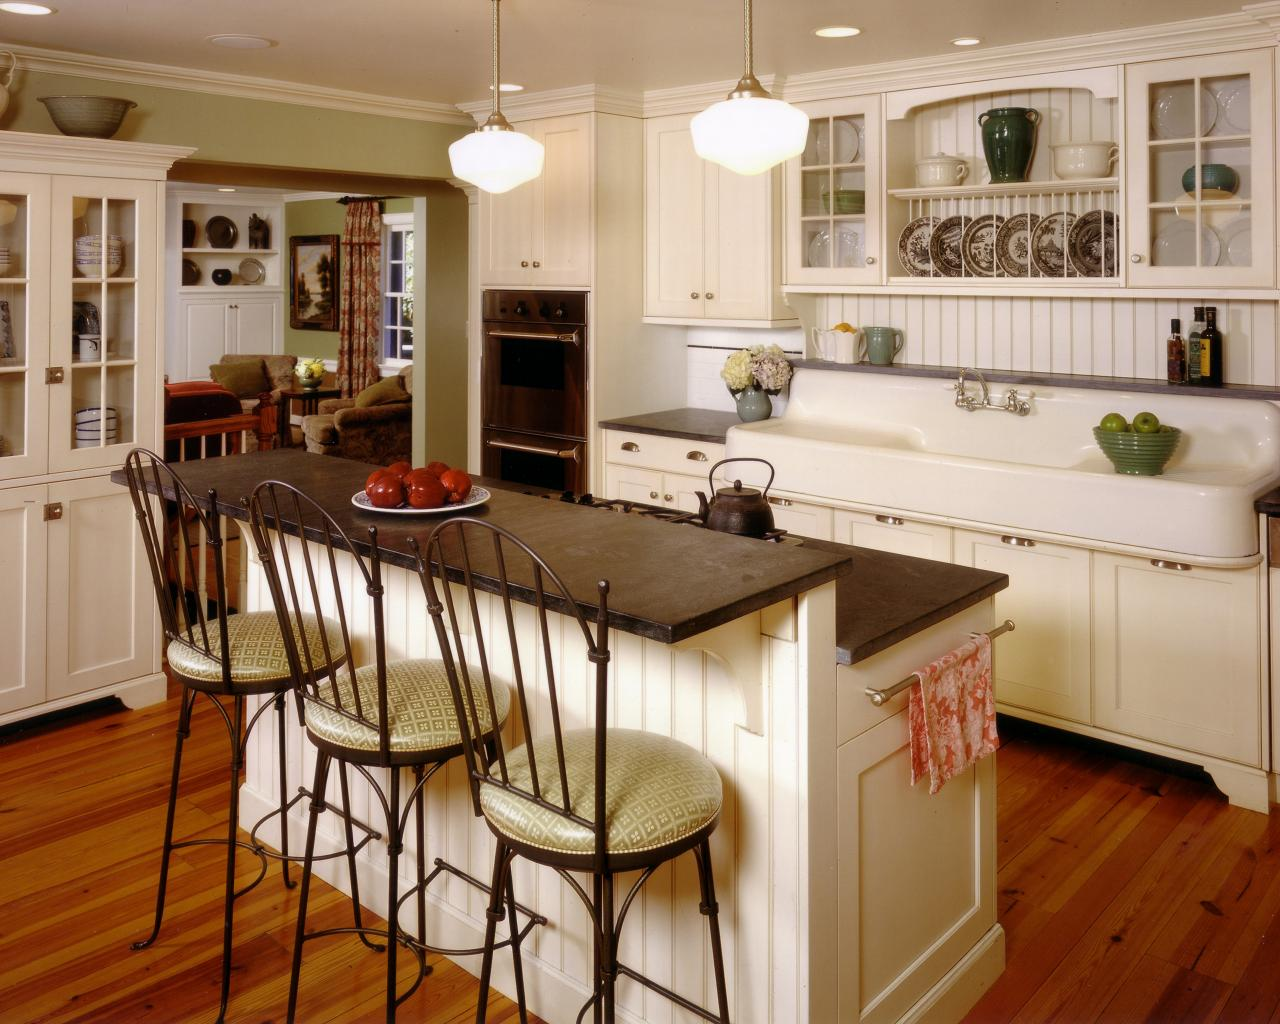 12 Cozy Cottage Kitchens Kitchen Ideas Design With Cabinets Islands Backsplashes Hgtv